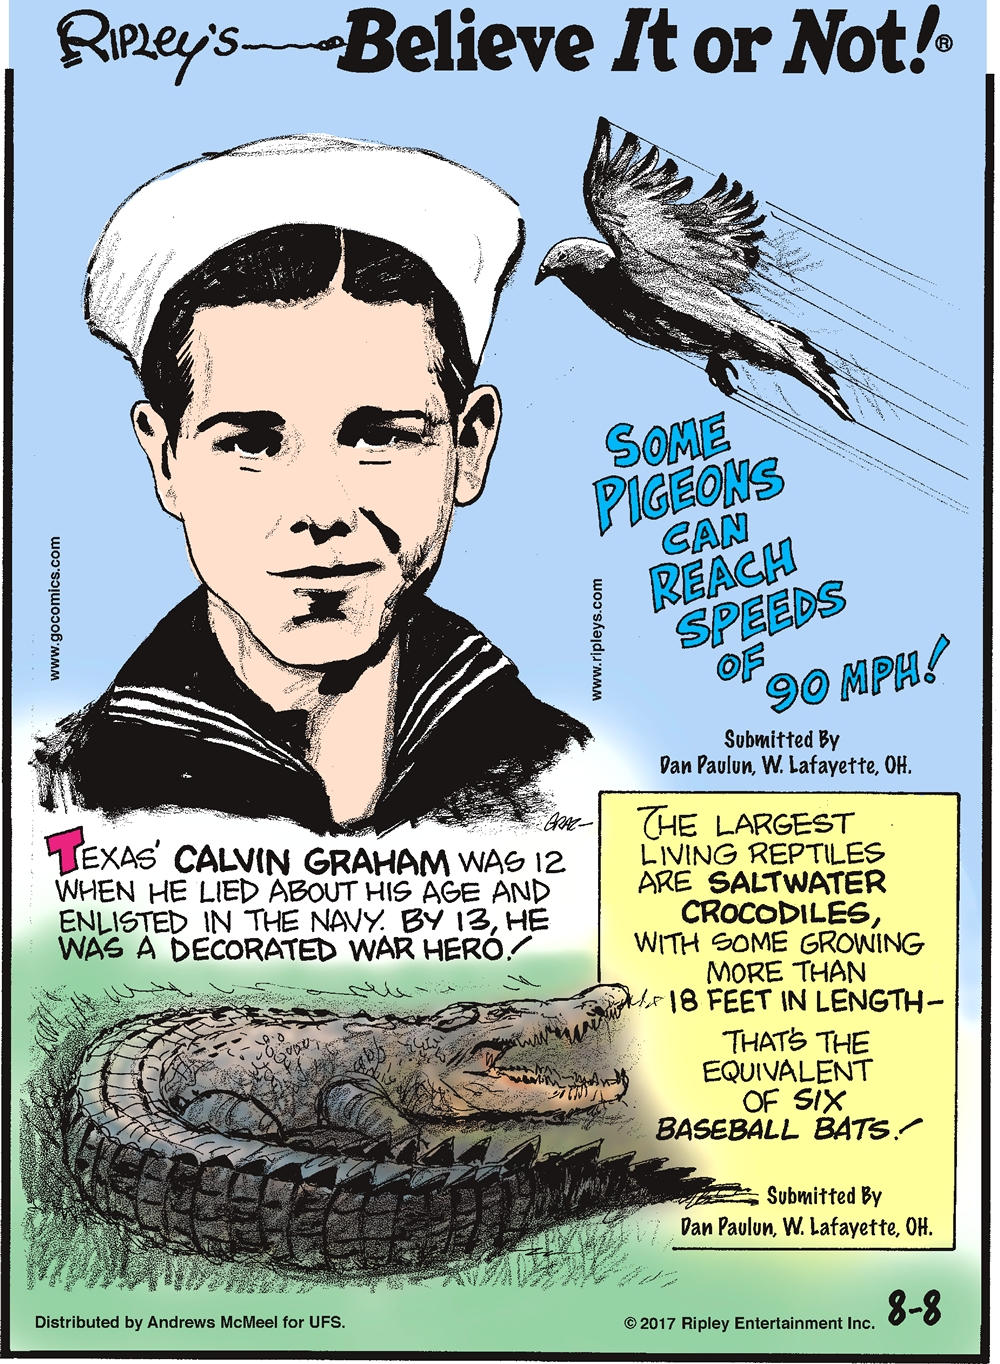 Some pigeons can reach speeds of 90 mph! Submitted by Dan Paulun, W. Lafayette, OH.-------------------- Texas' Calvin Graham was 12 when he lied about his age and enlisted in the Navy. By 13, he was a decorated war hero!-------------------- The largest living reptiles are saltwater crocodiles, with some growing more than 18 feet in length - that's the equivalent of six baseball bats! Submitted by Dan Paulun, W. Lafayette, OH.